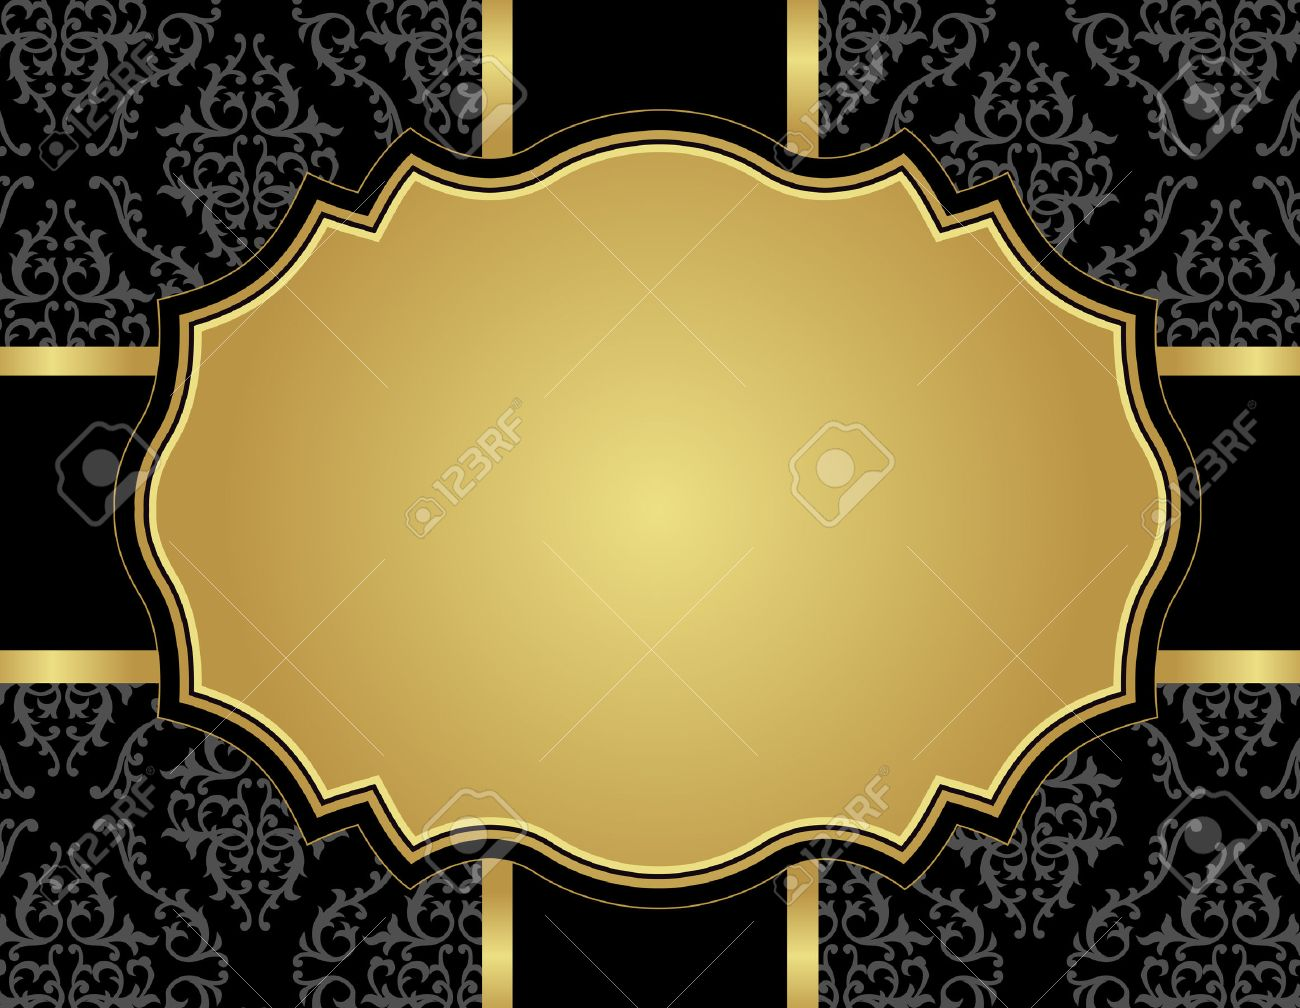 black and gold invitation background